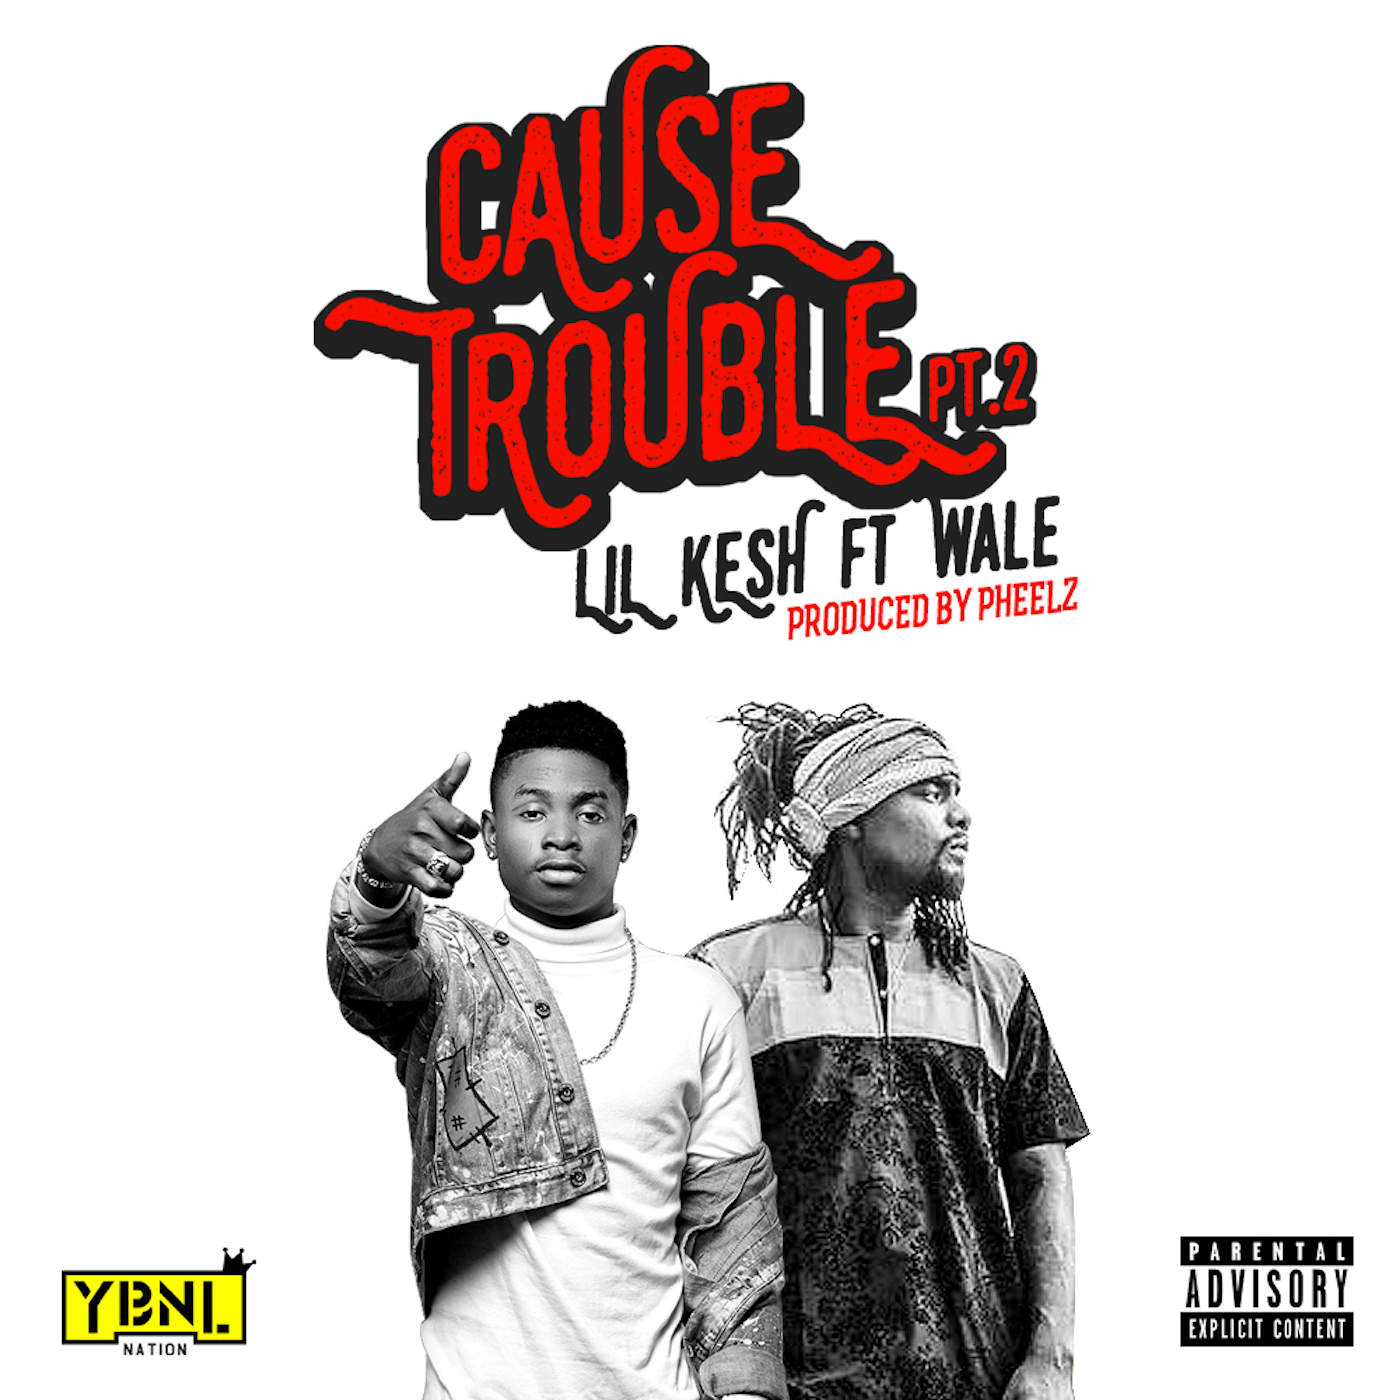 Lil Kesh ft. Wale - Cause Trouble pt. 2